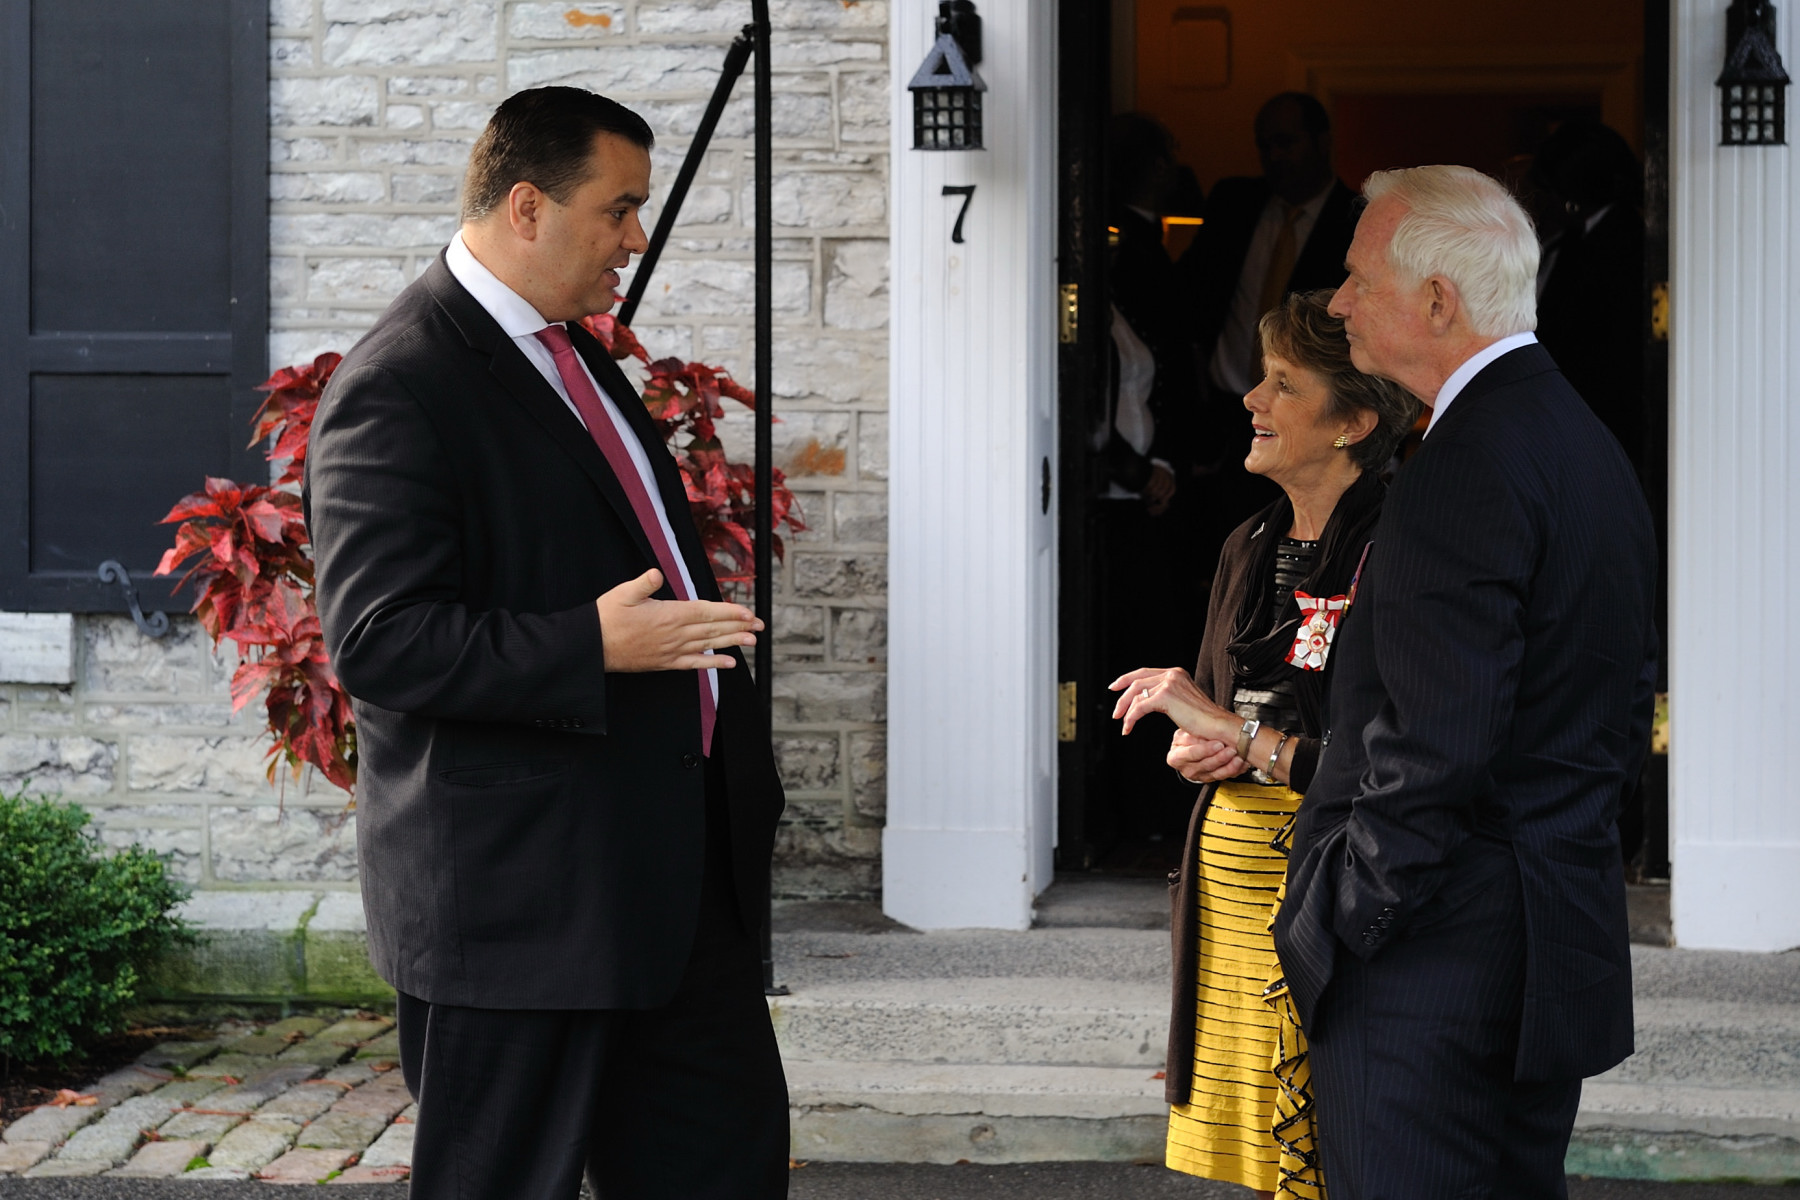 Before leaving for Parliament, Their Excellencies met the Honourable James Moore, Minister of Canadian Heritage, at 7 Rideau Gate.